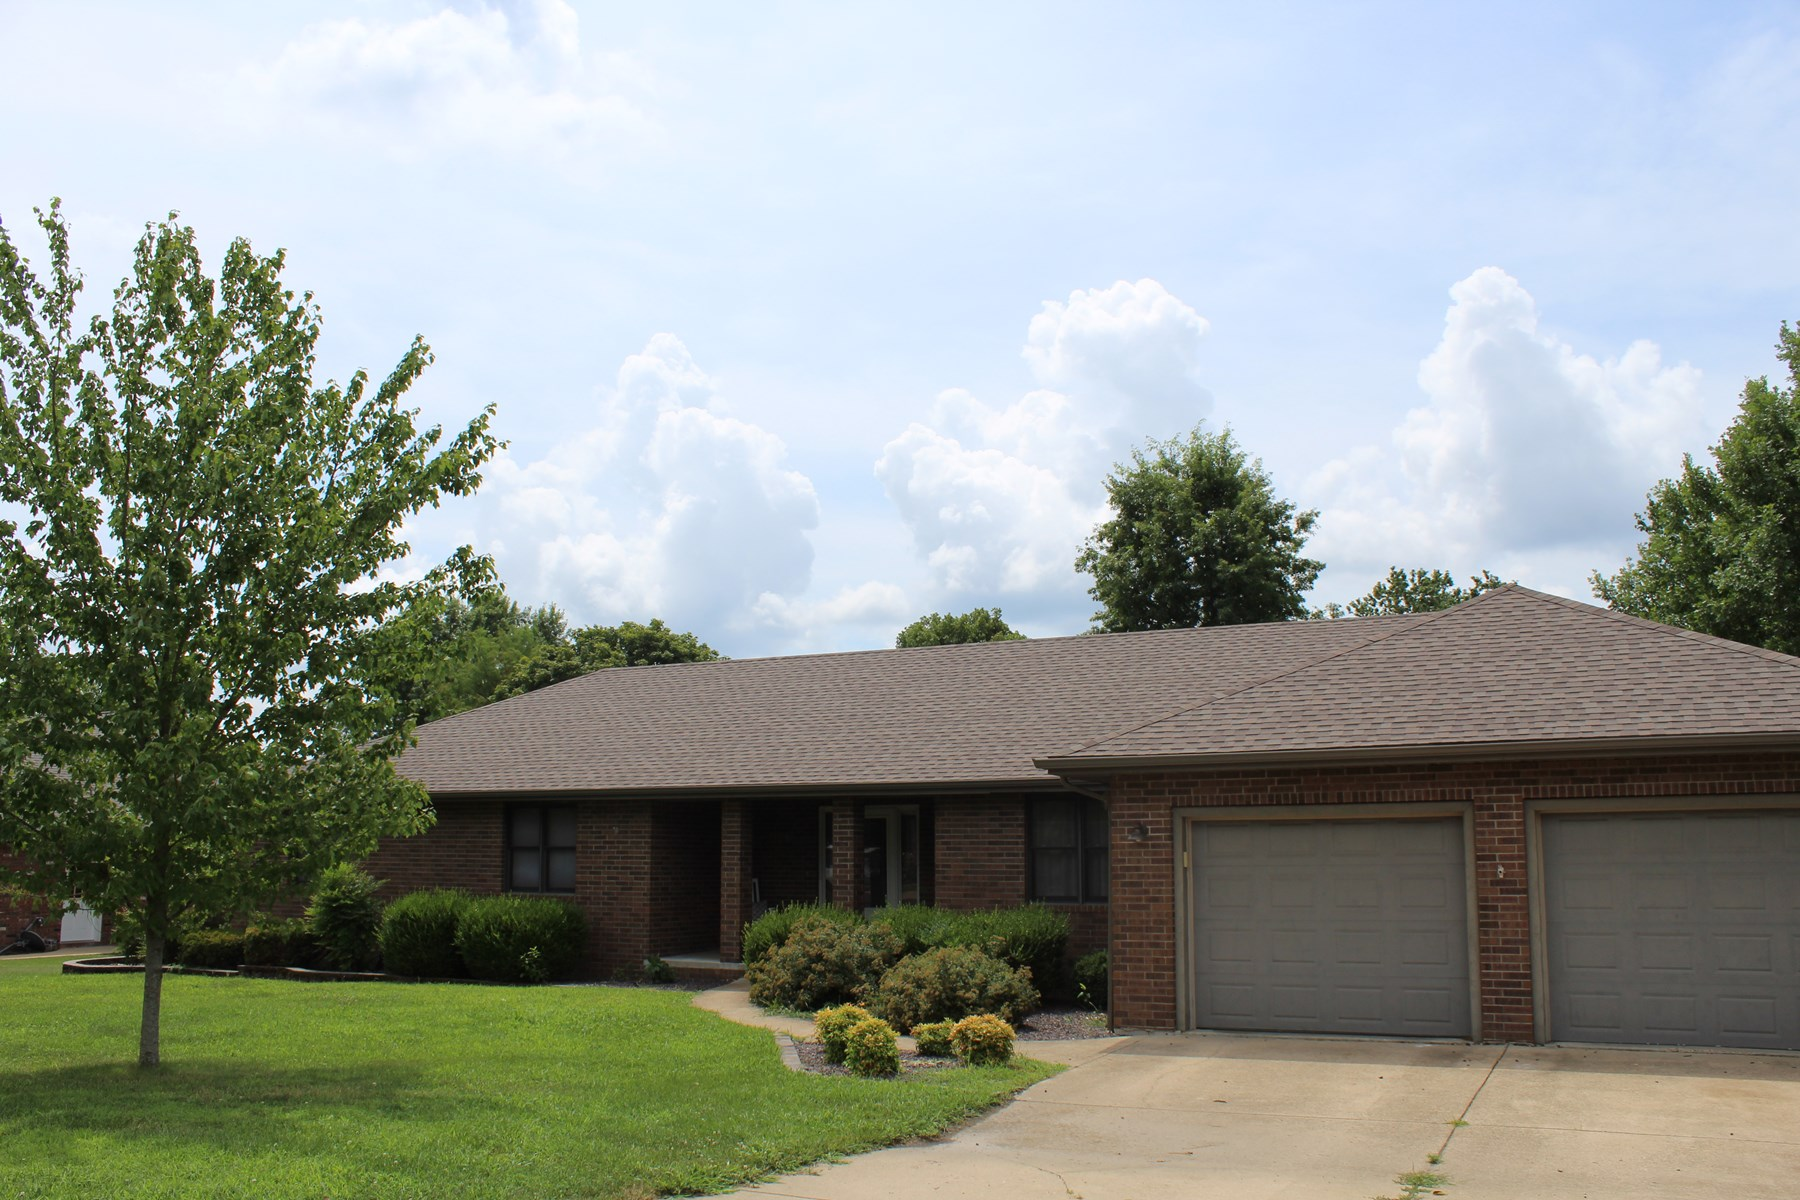 Missouri Ozarks Brick Home For Sale in Mountain Grove, MO